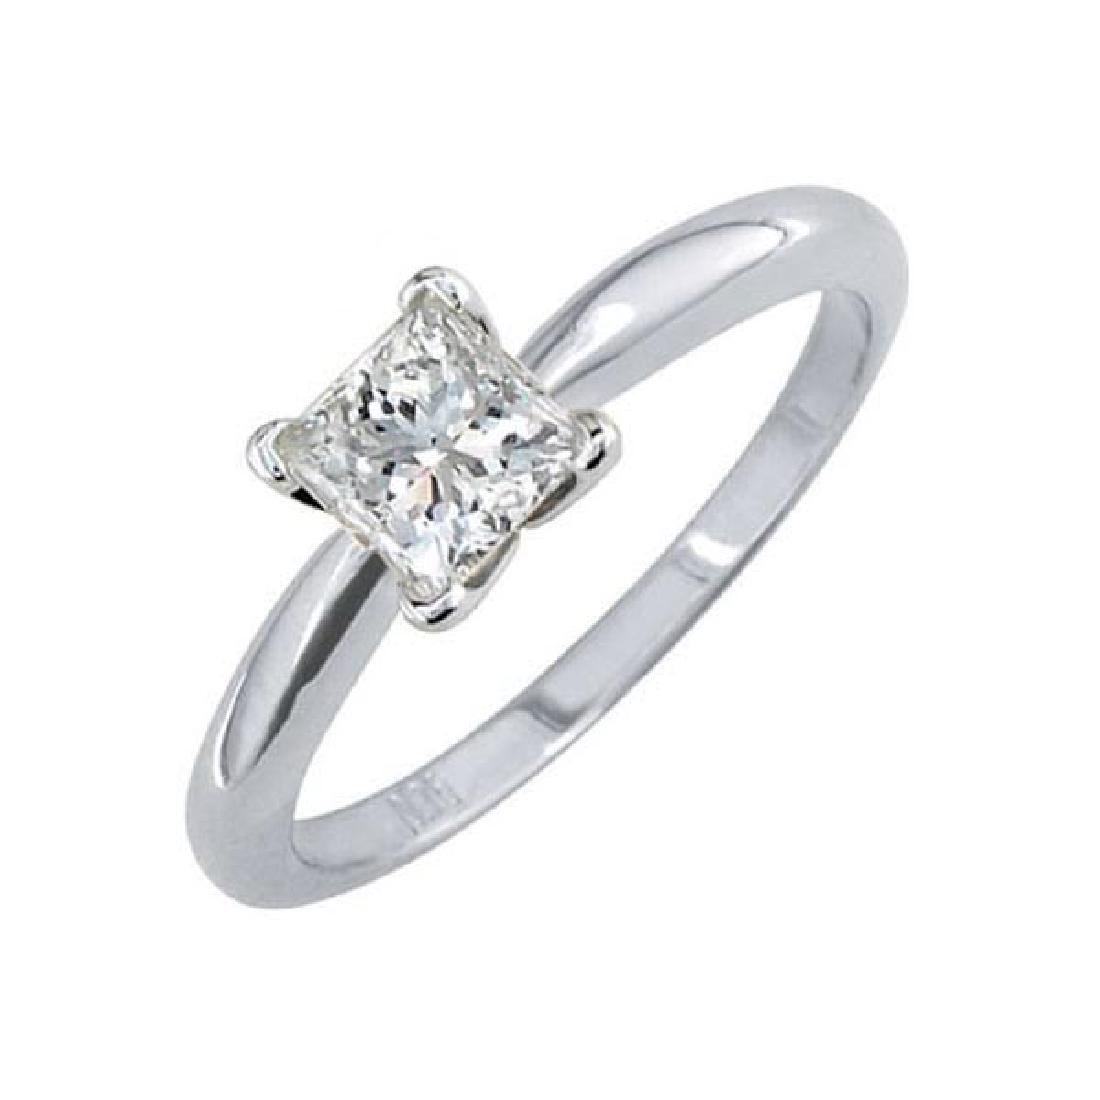 Certified 0.34 CTW Princess Diamond Solitaire 14k Ring